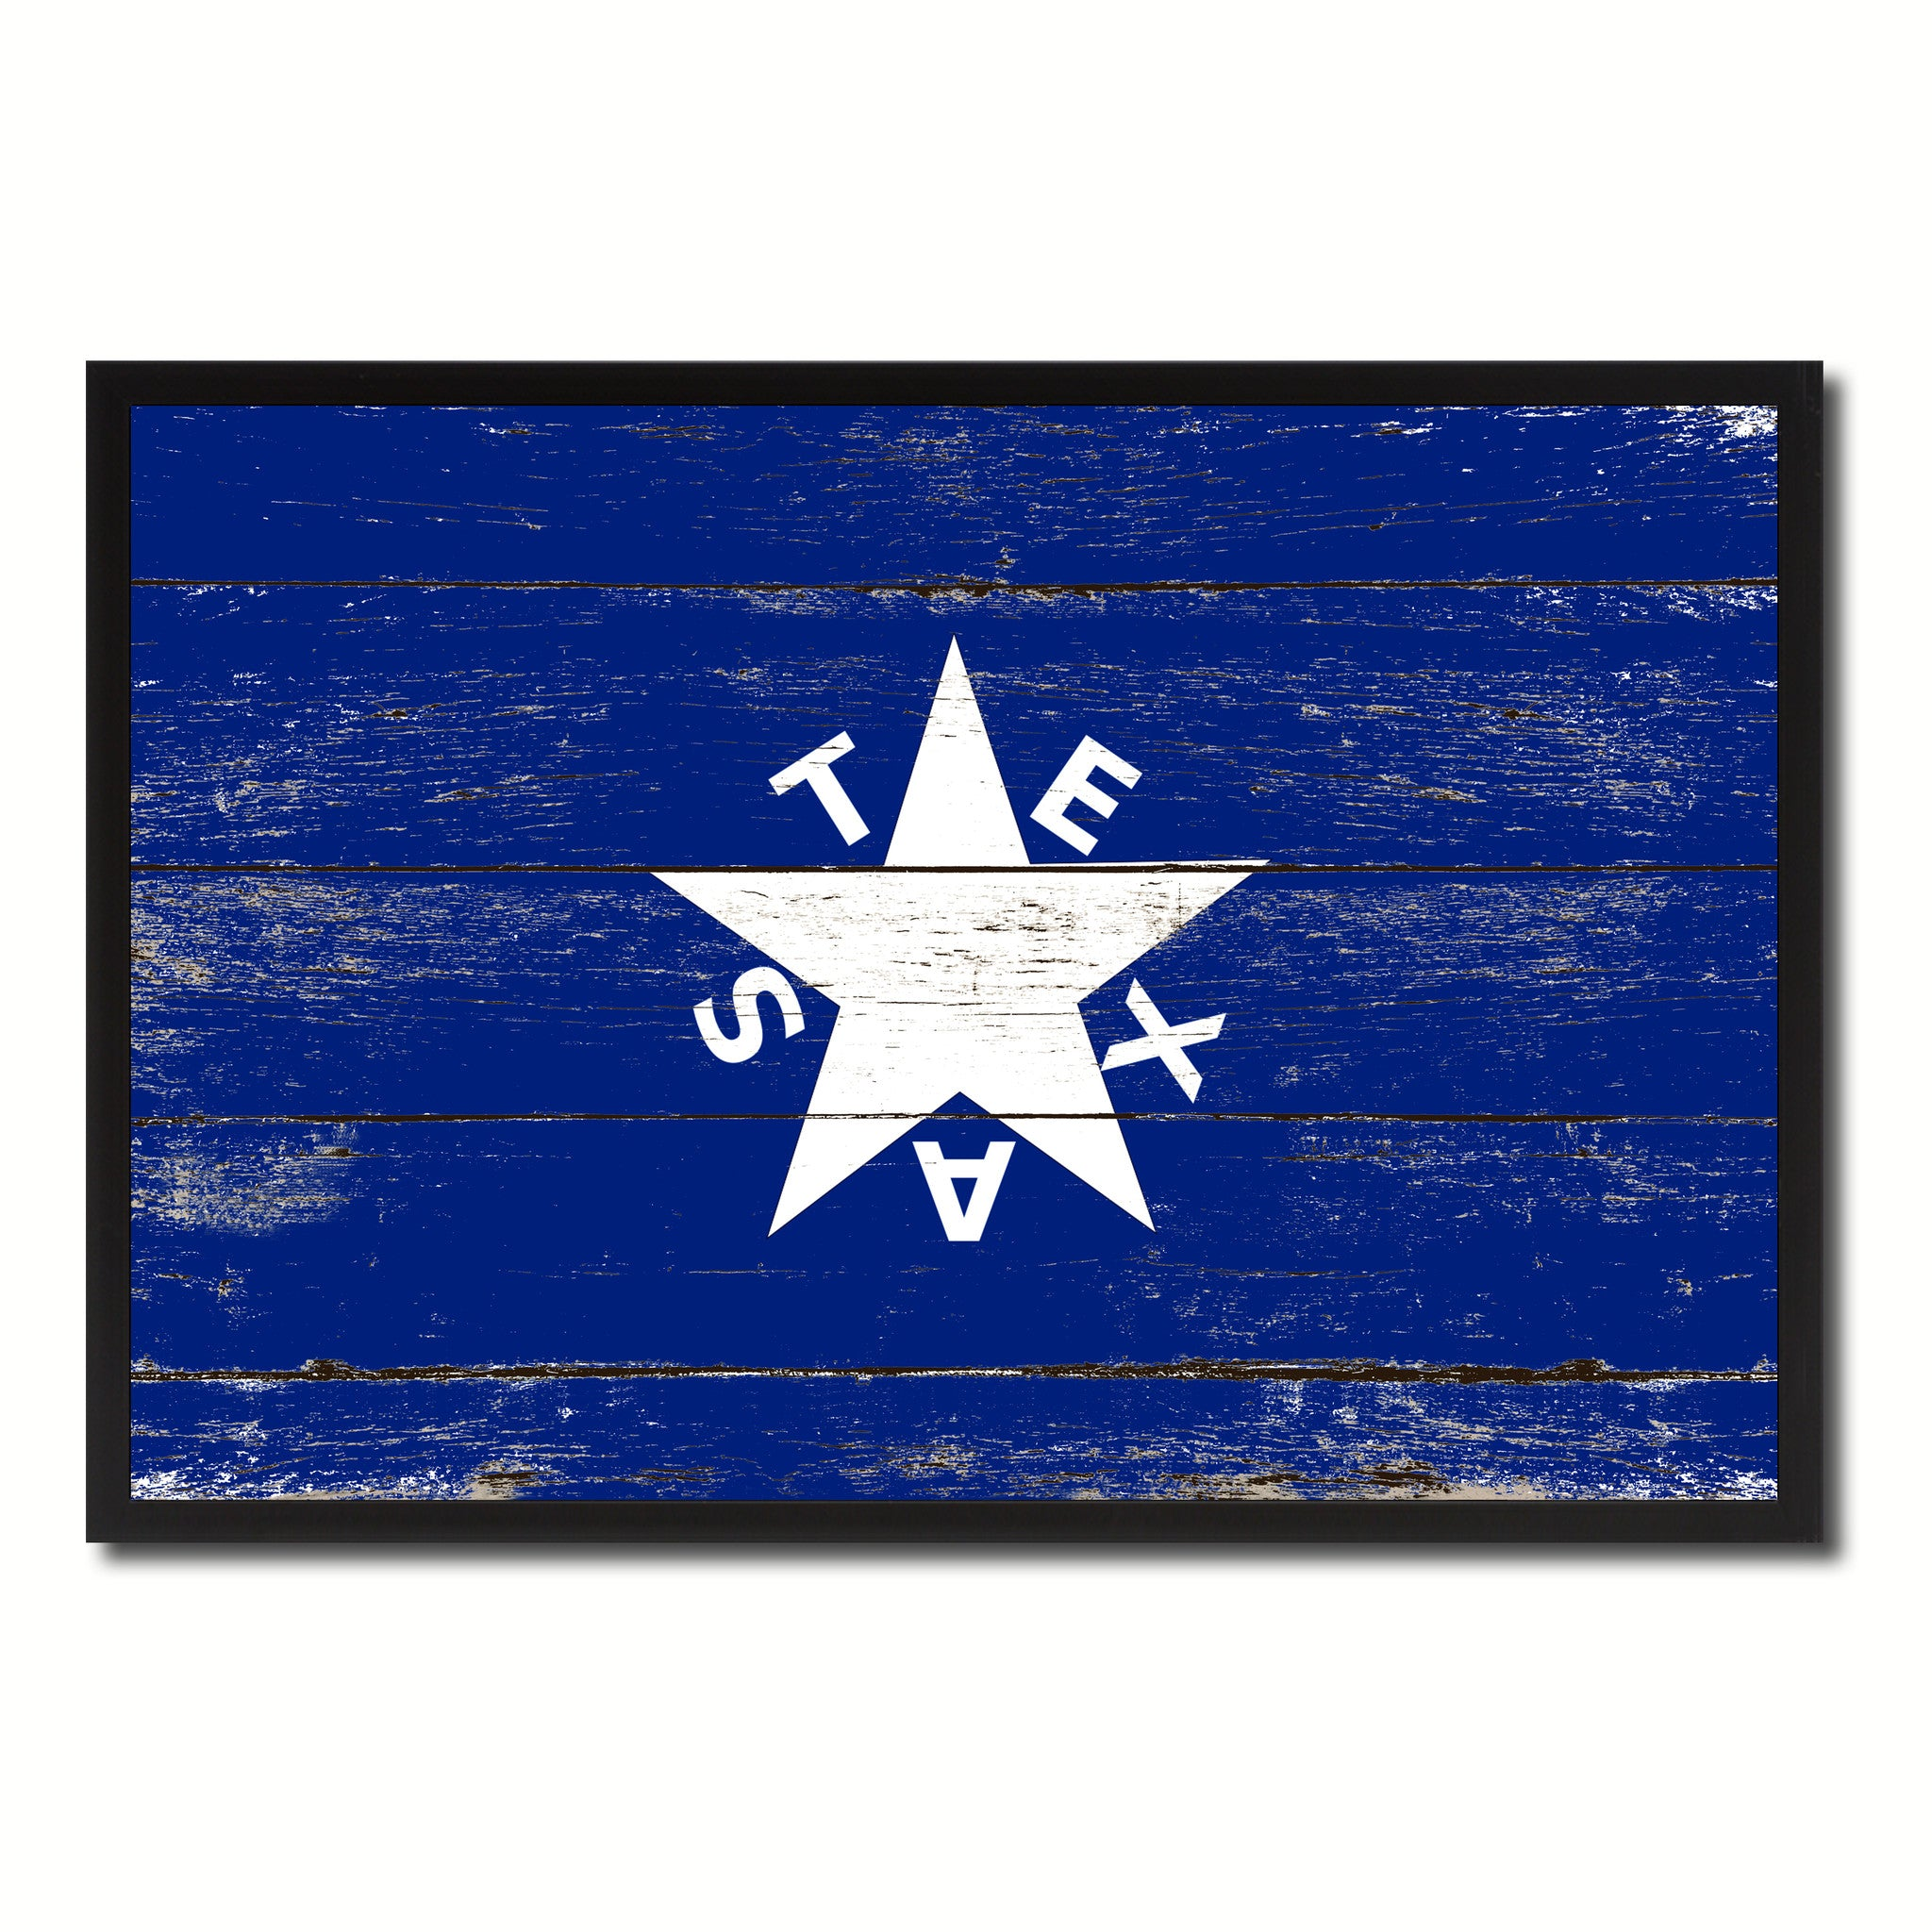 Texas History Lorenzo De Zavala Military Flag Vintage Canvas Print with Picture Frame Home Decor Man Cave Wall Art Collectible Decoration Artwork Gifts